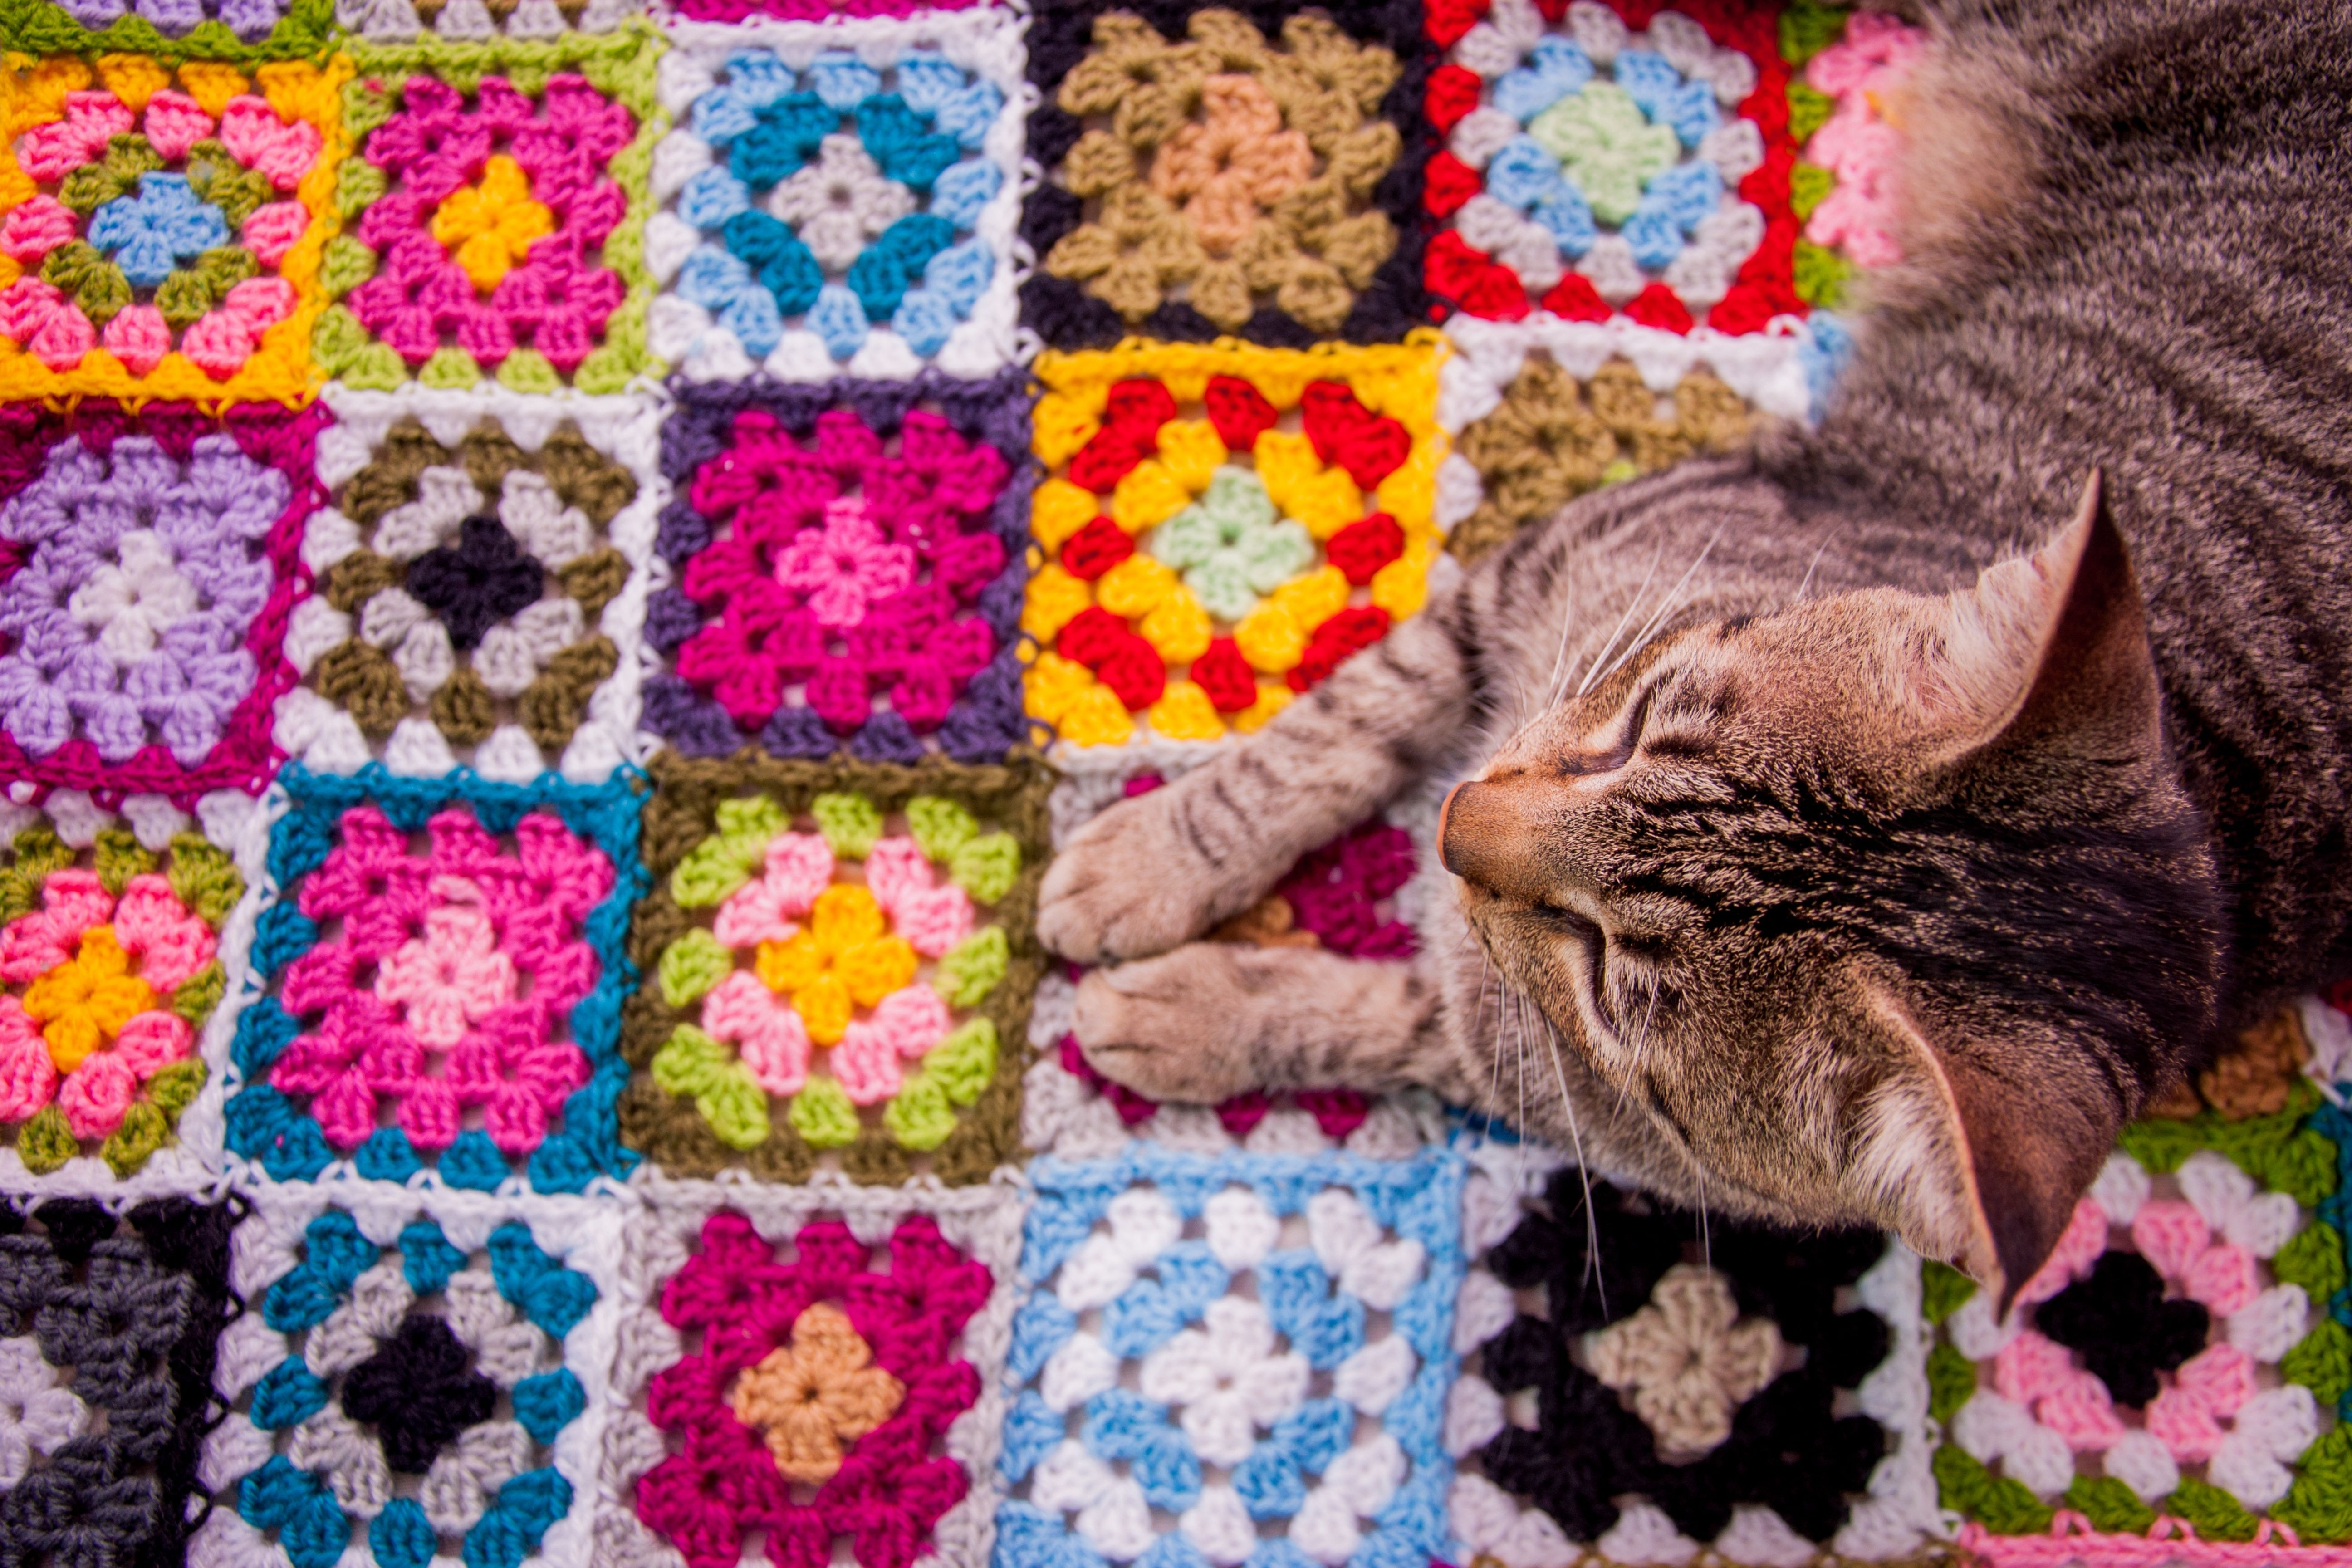 How Much Time Does It Take to Crochet a Blanket